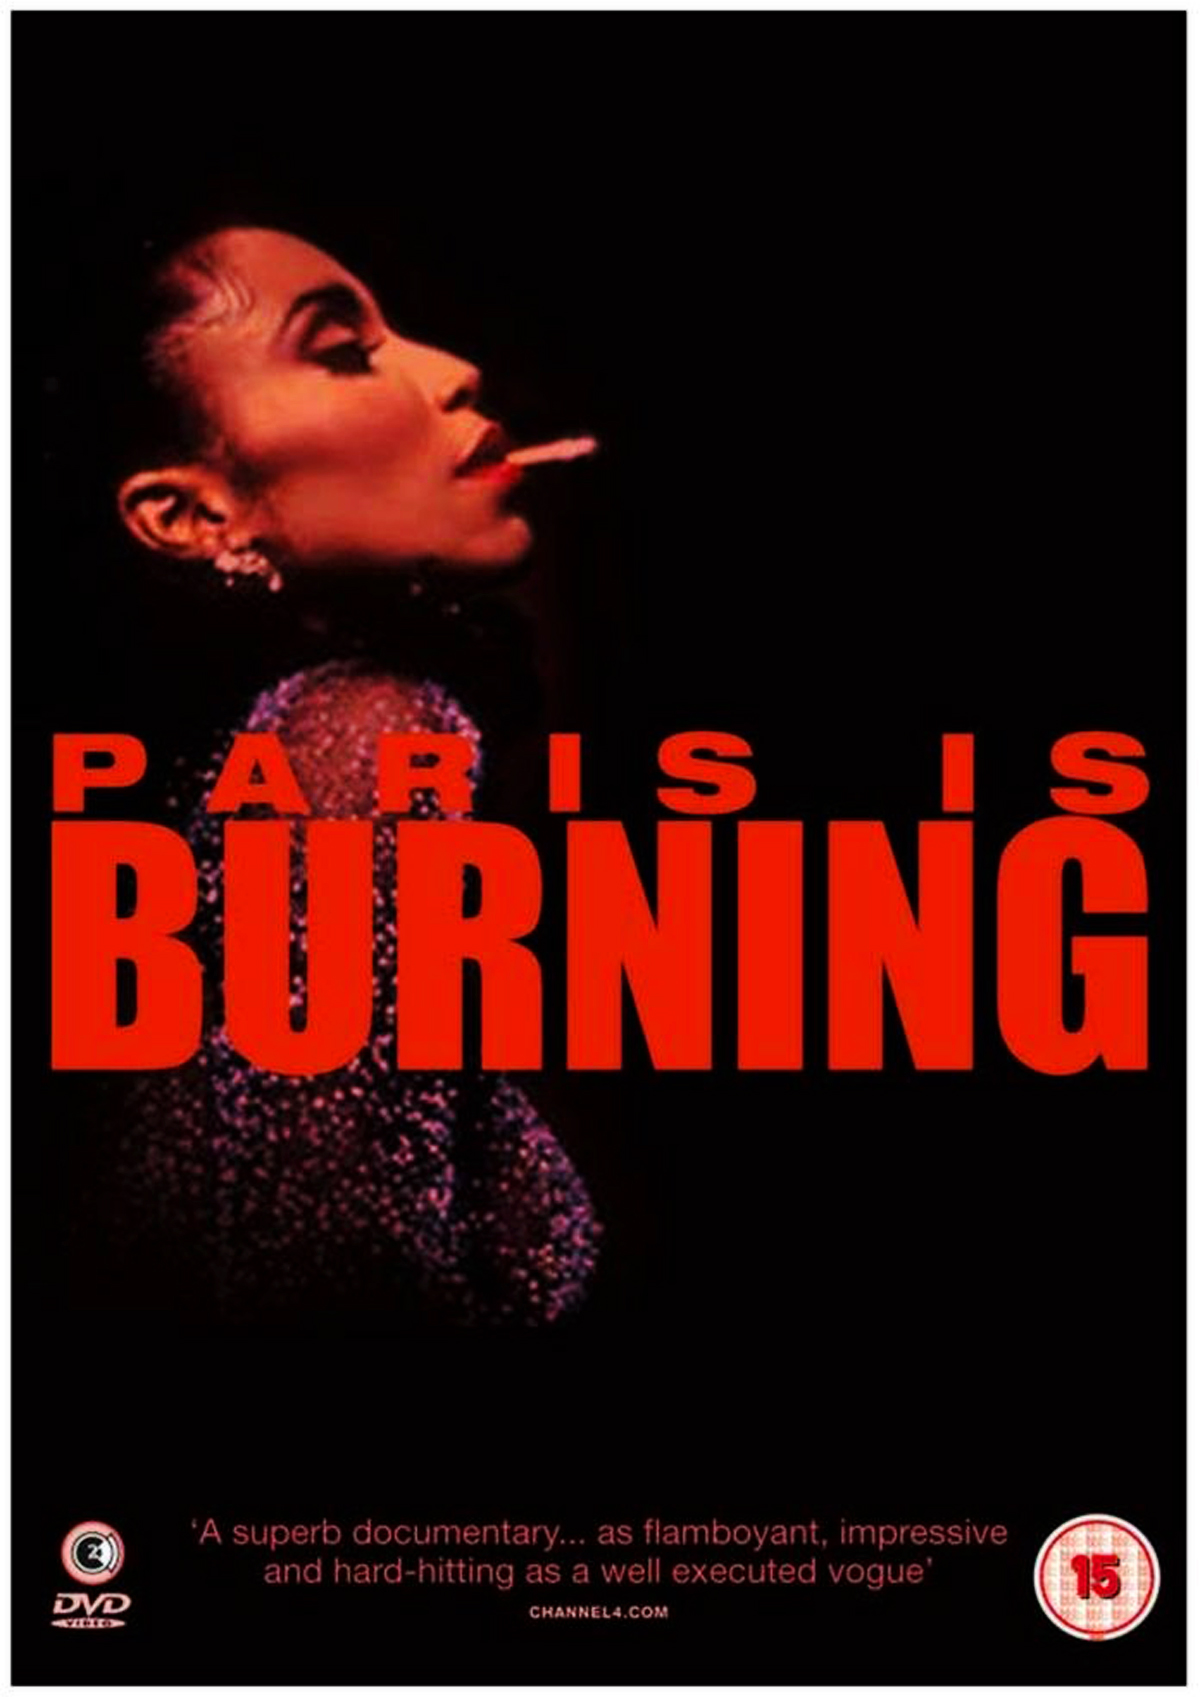 paris is burning essay In her book black looks: race and representation (which we read an excerpt of  for class), bell hooks gives a rather scathing critique of paris is.